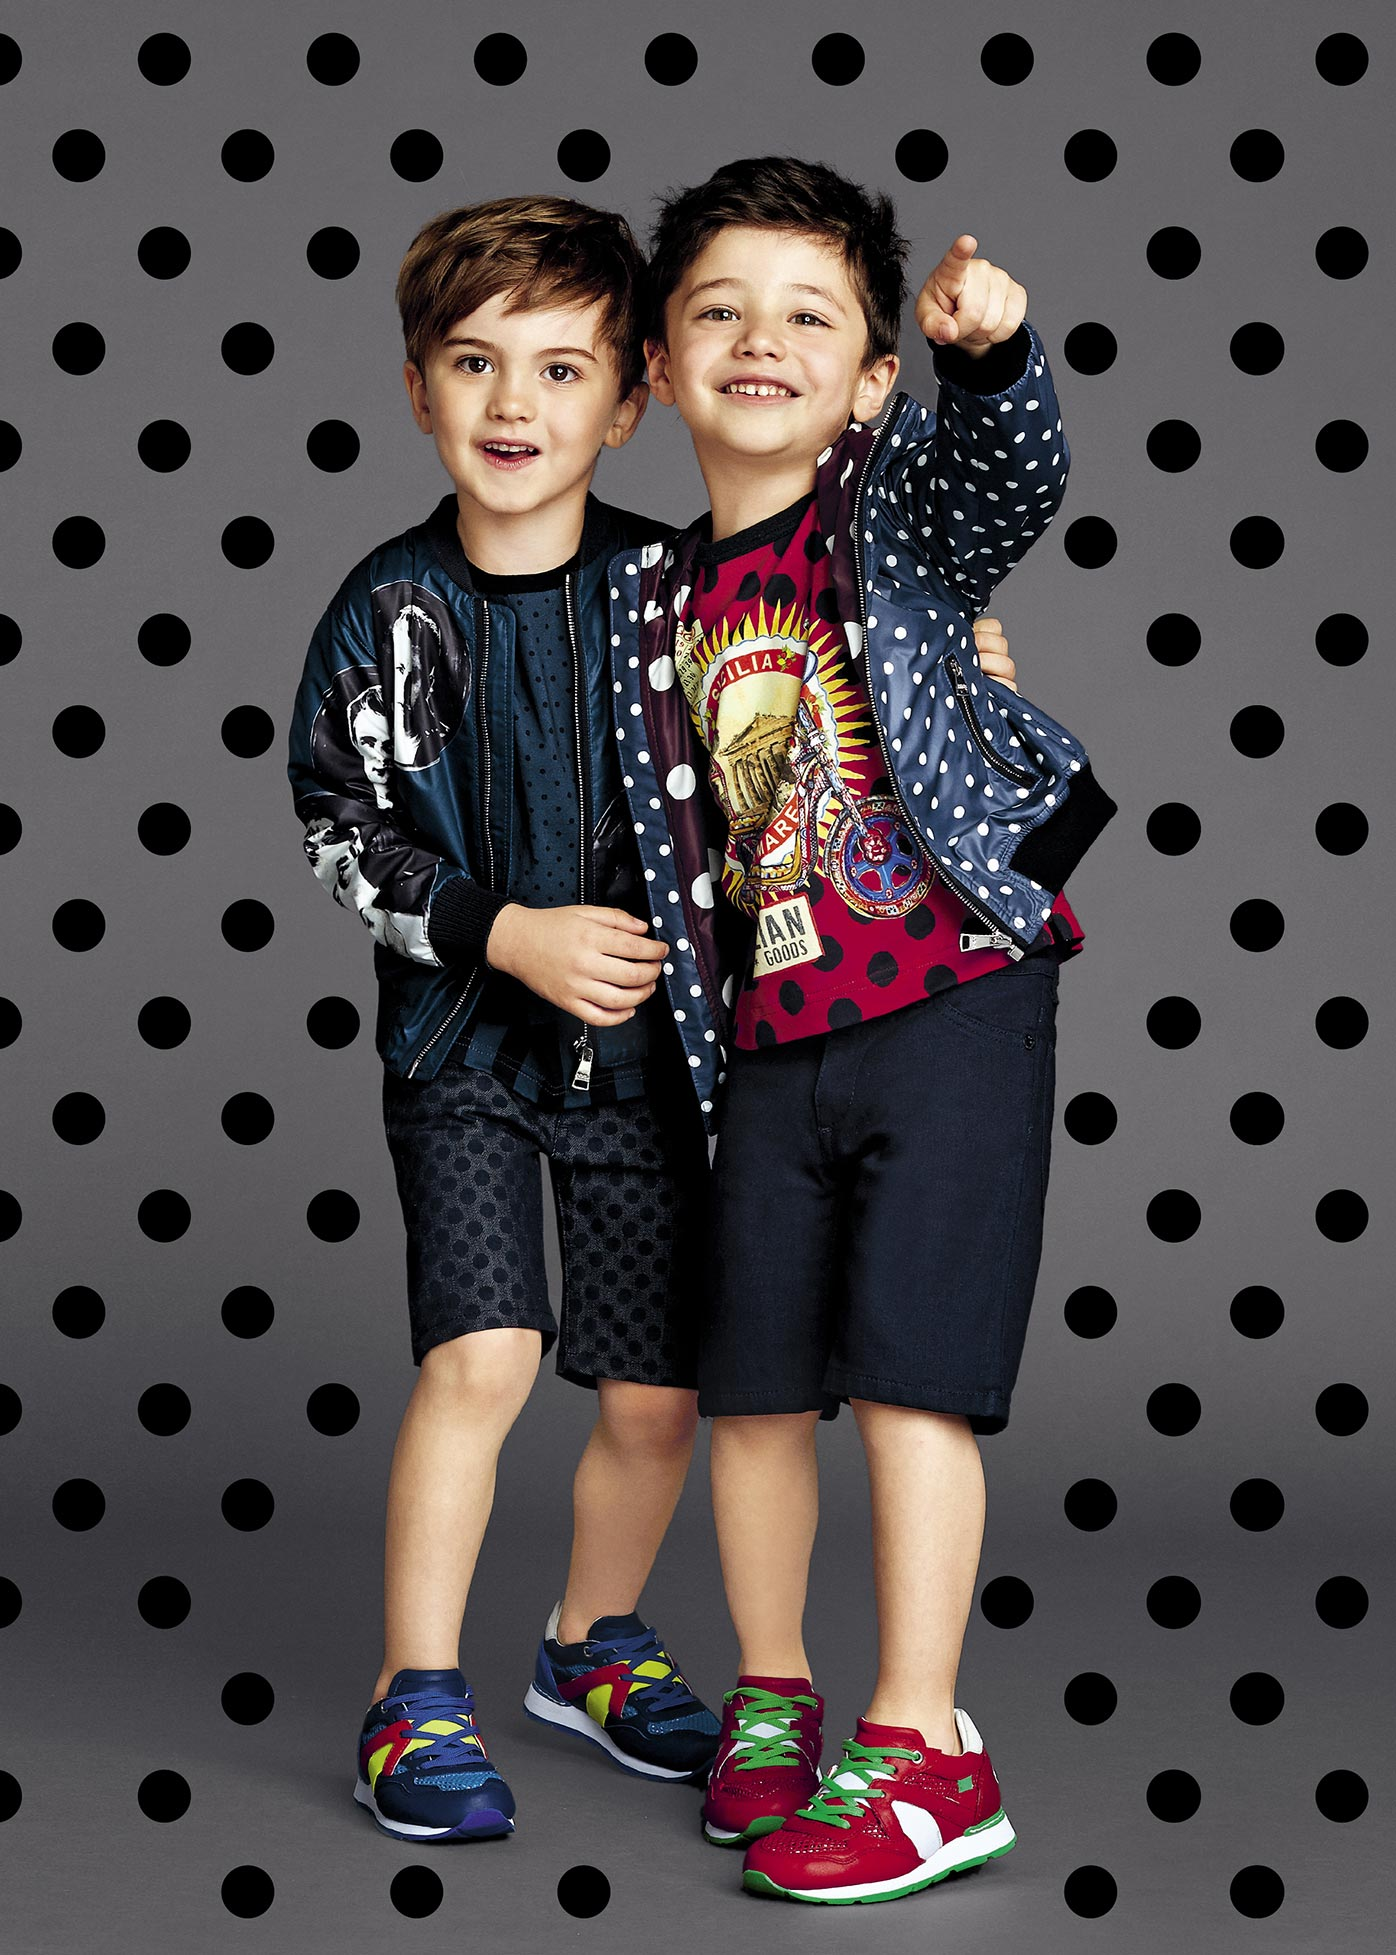 dolce-and-gabbana-summer-2015-child-collection-82-zoom.jpg